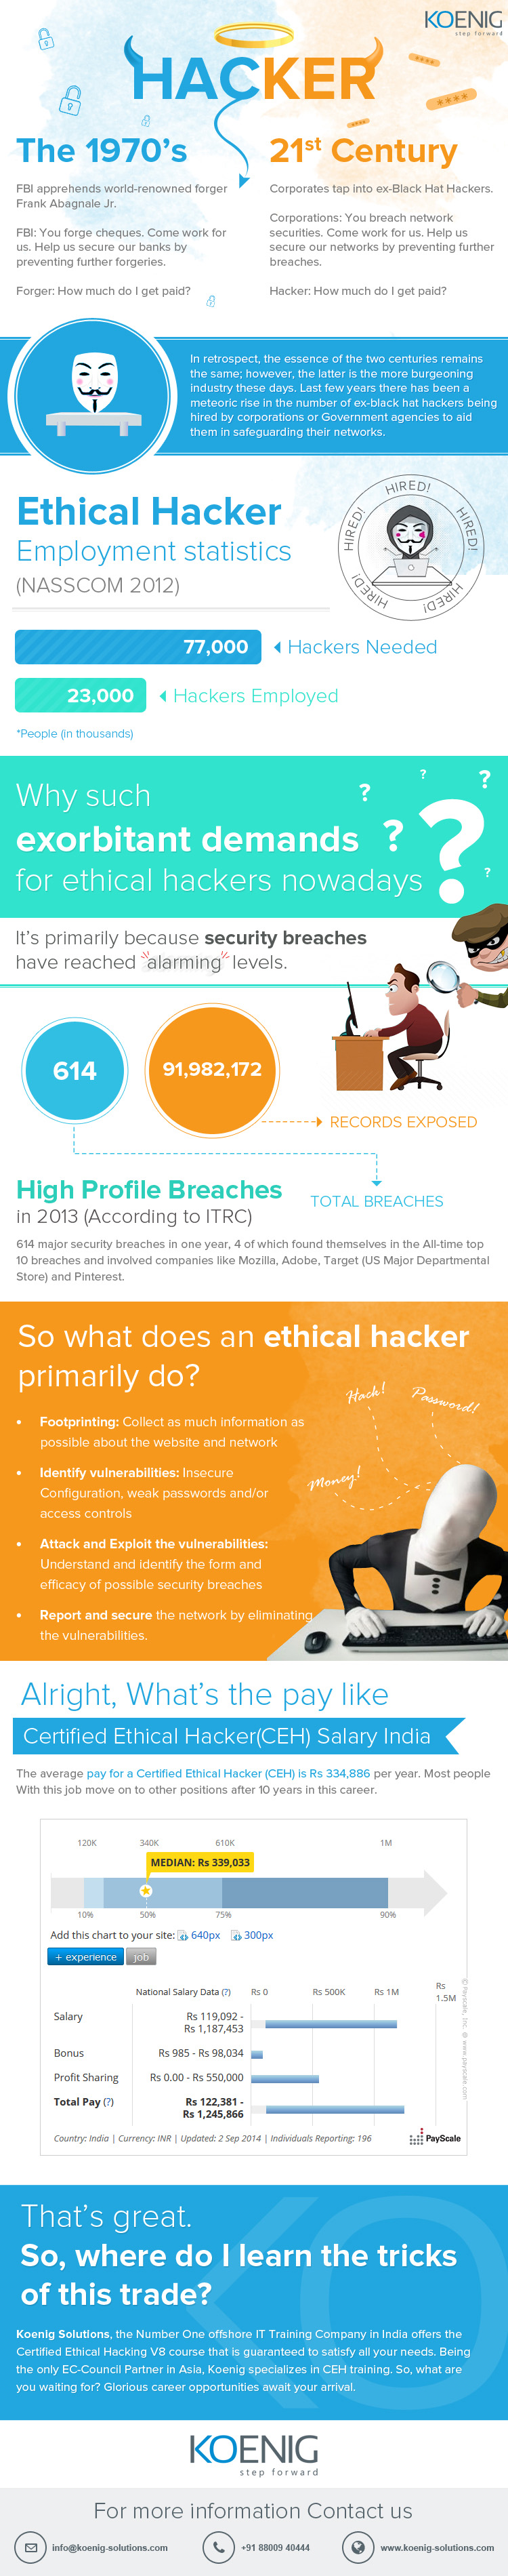 Exorbitant-Demands-For-Ethical-Hackers-Nowadays-infographic-plaza